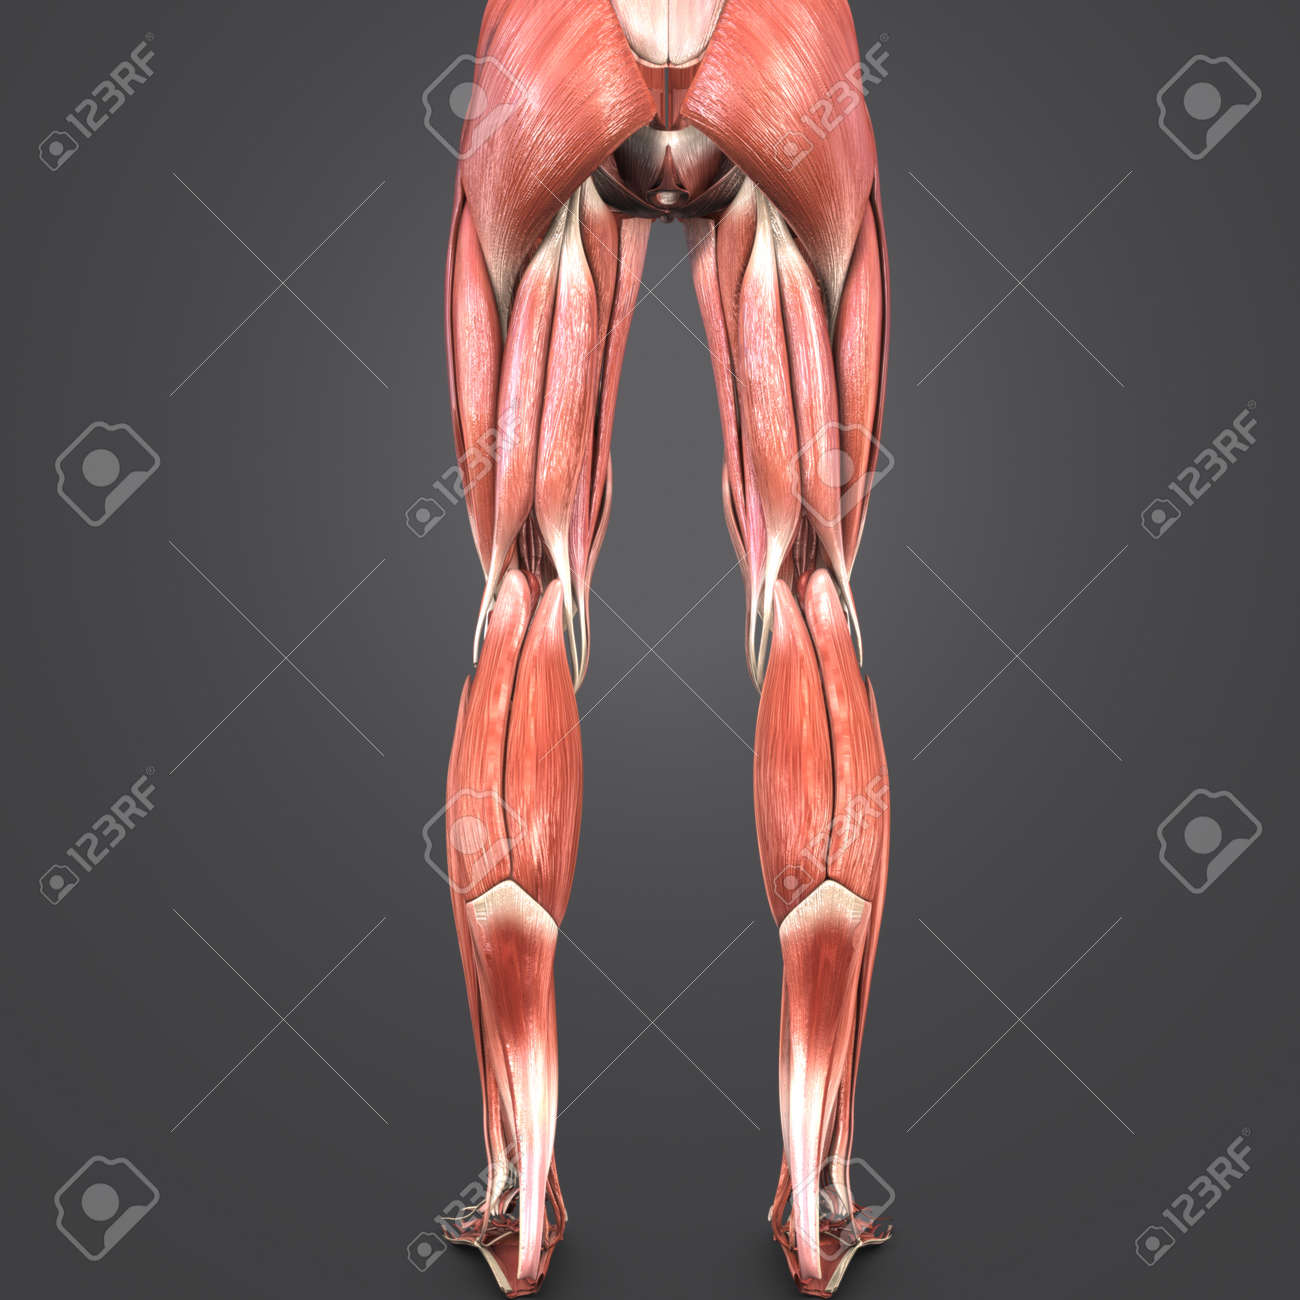 Lower Limbs Muscles Anatomy Posterior View Stock Photo, Picture And ...